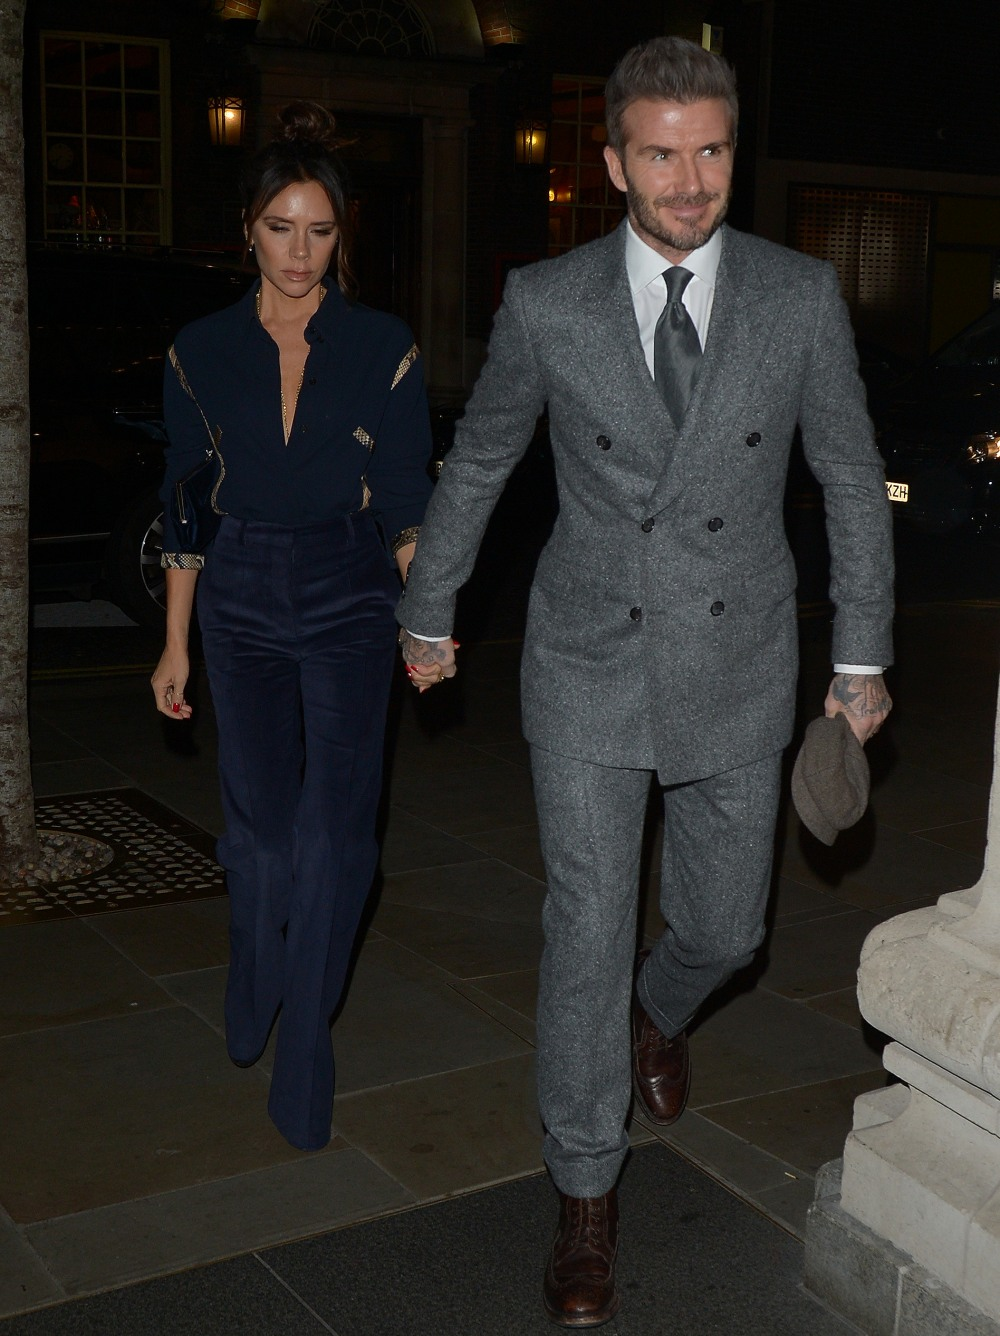 David and Victoria Beckham Out and About a Londra